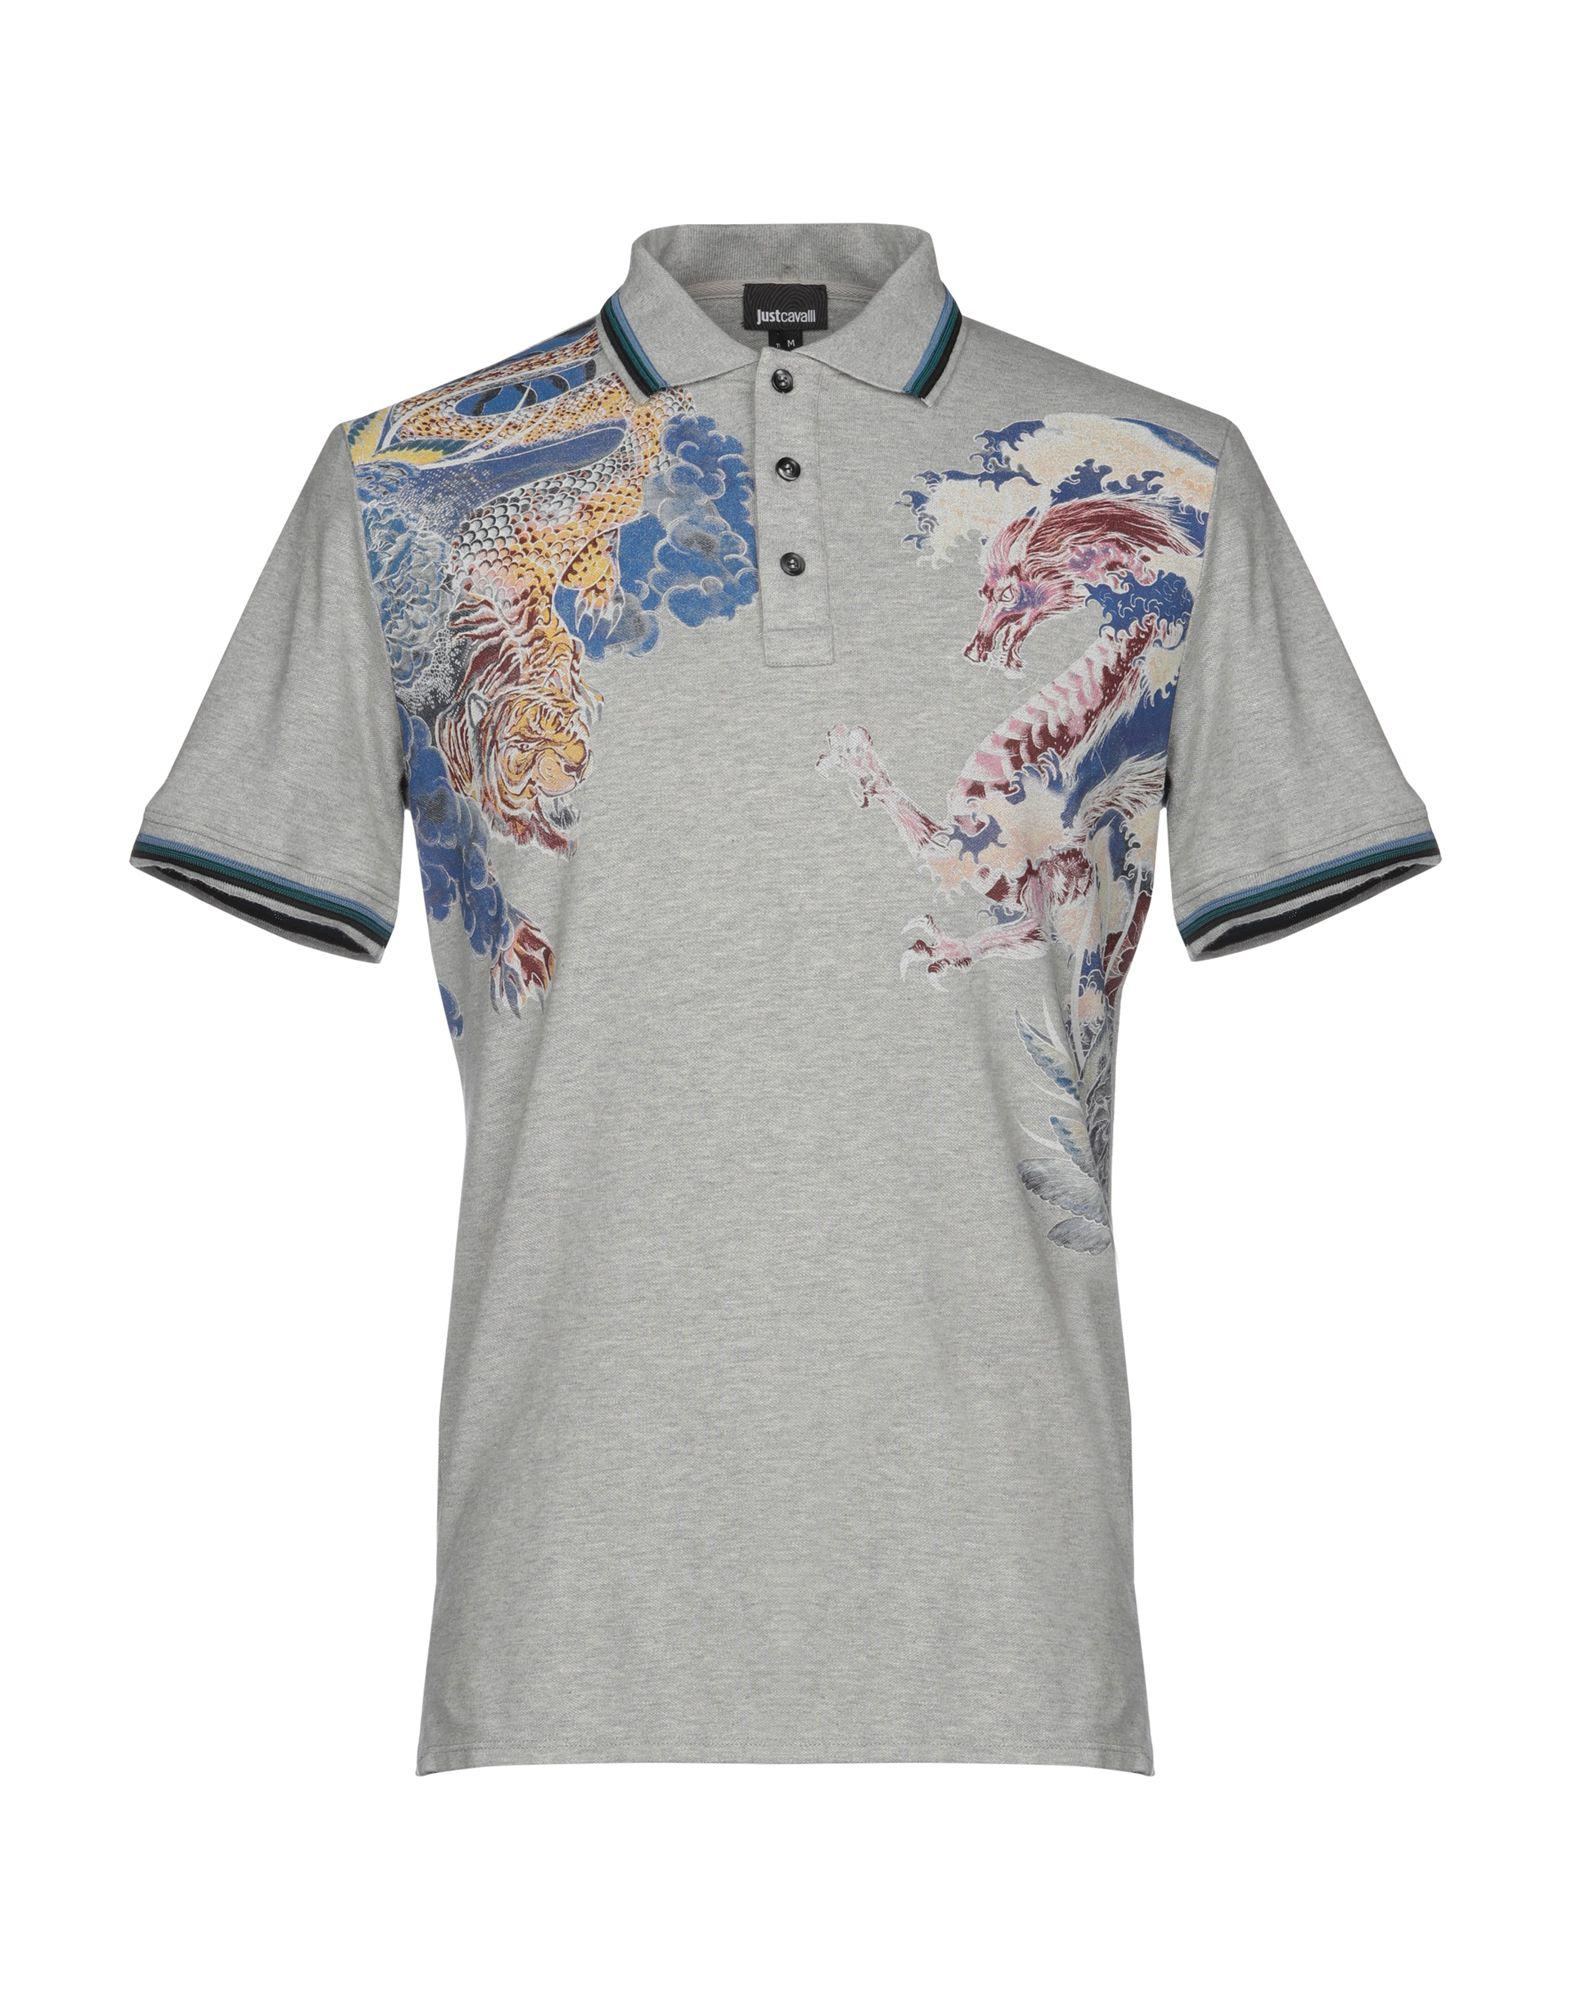 727f0951 Just Cavalli Polo Shirt in Gray for Men - Lyst